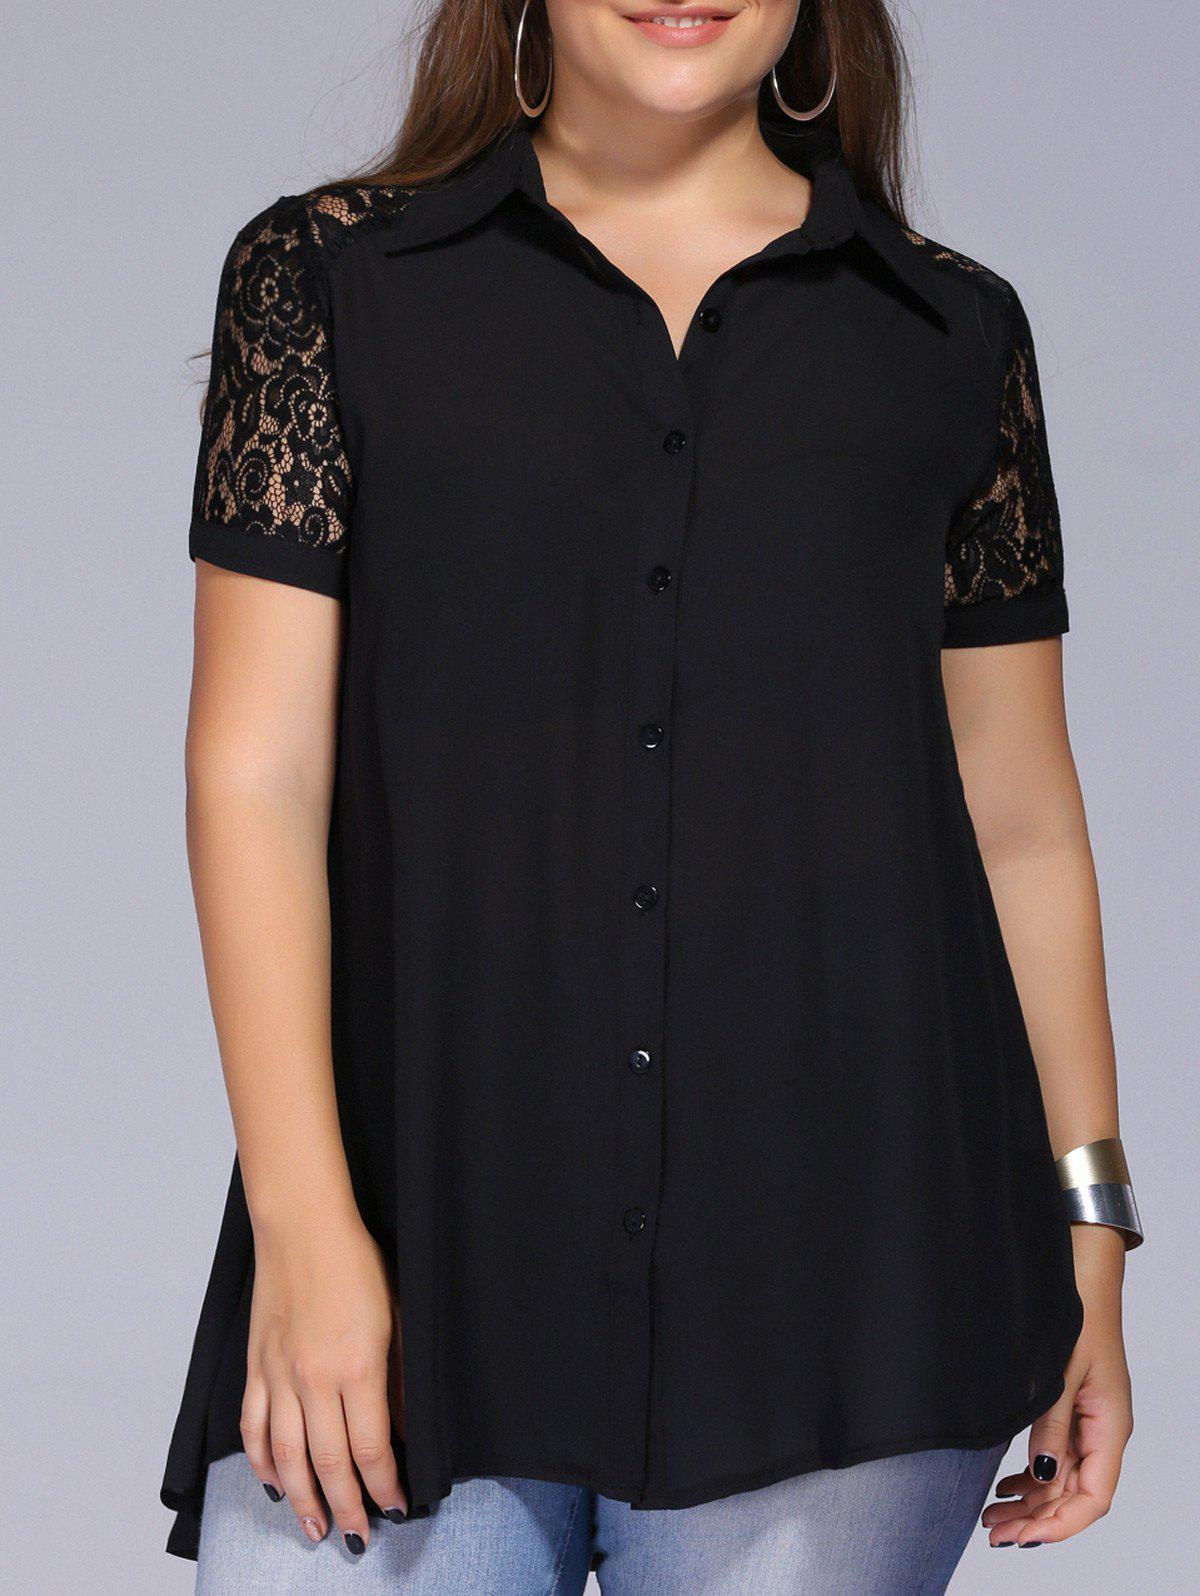 Lace Trim Plus Size Tunic Blouse - BLACK 2XL